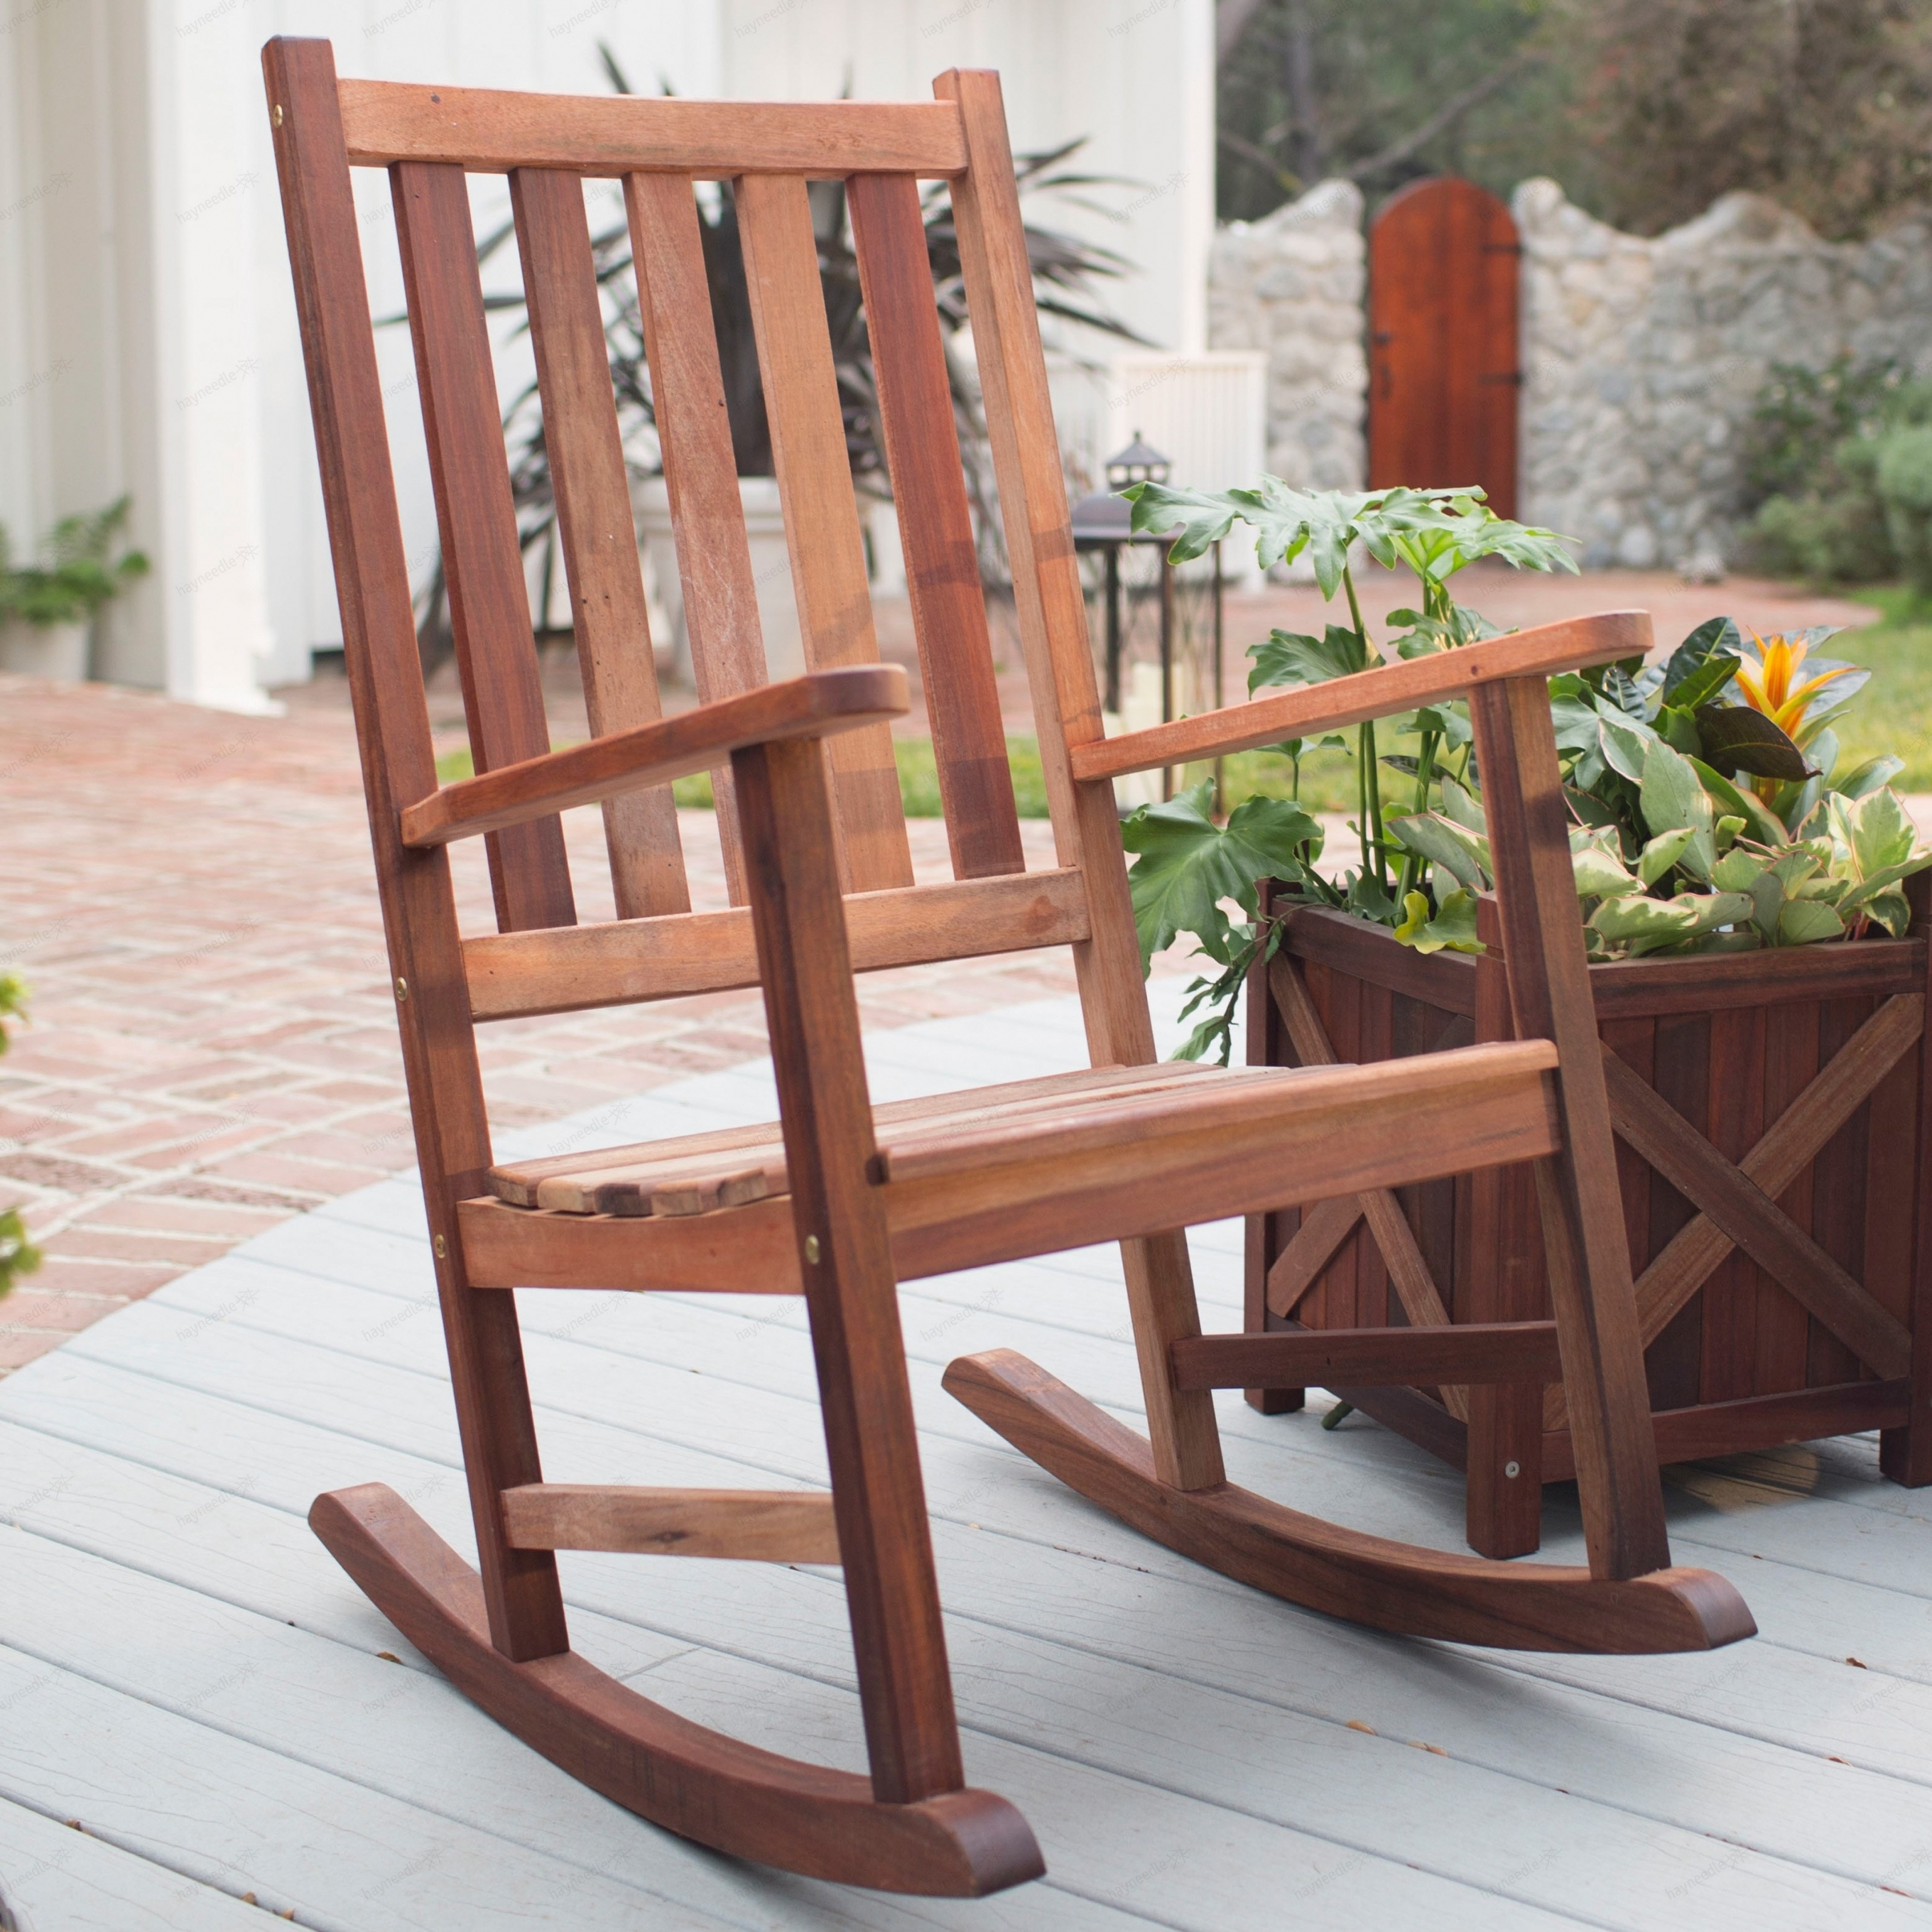 Chair | Walnut Rocking Chair Black Wooden Rocking Chairs Patio Intended For Patio Wooden Rocking Chairs (View 13 of 15)